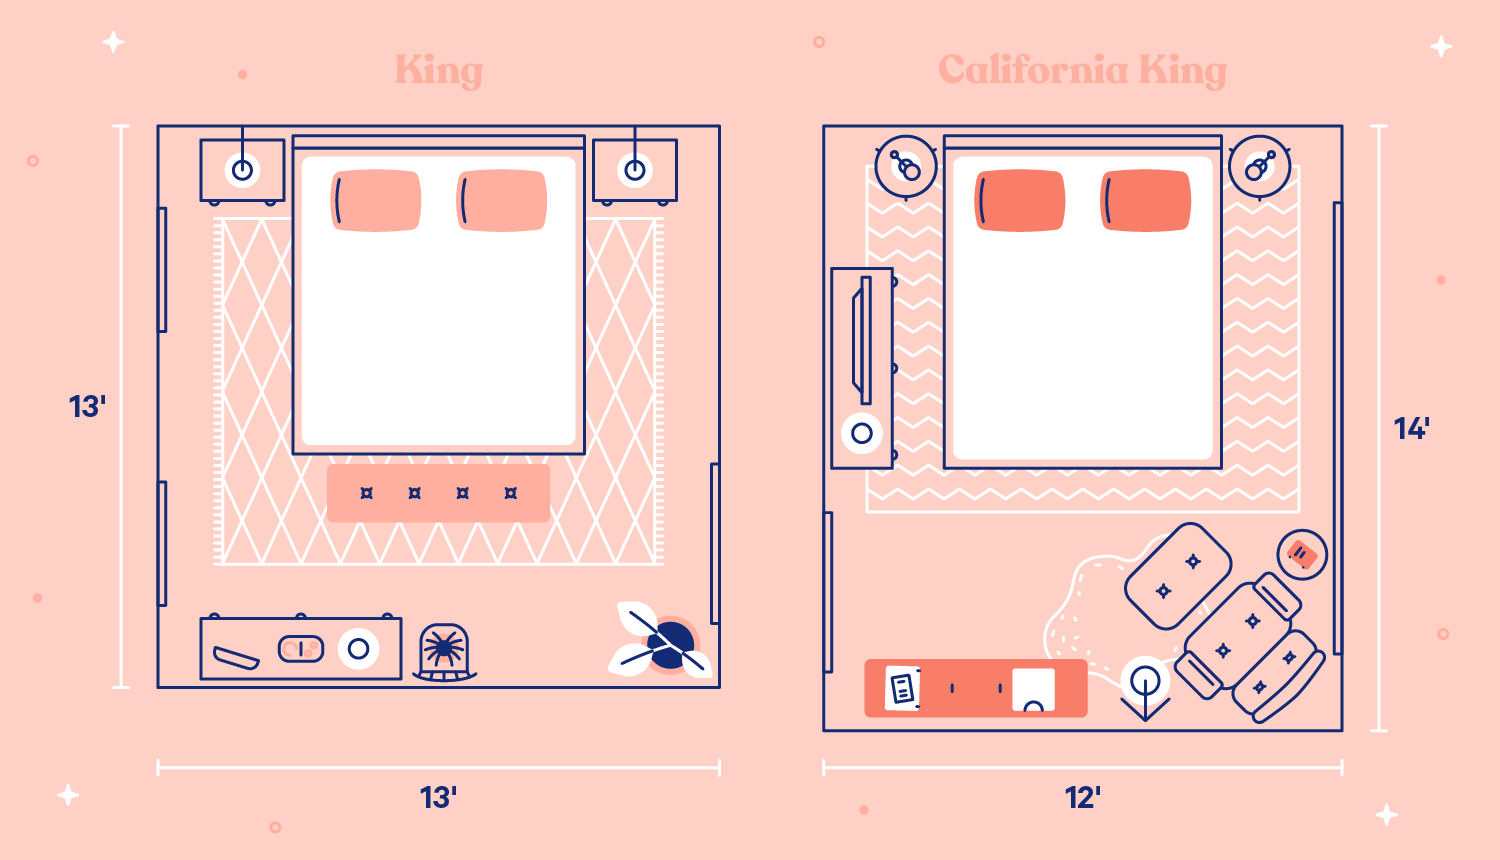 A king and a California king bed in two seprated rooms of the different sizes. Illustration.